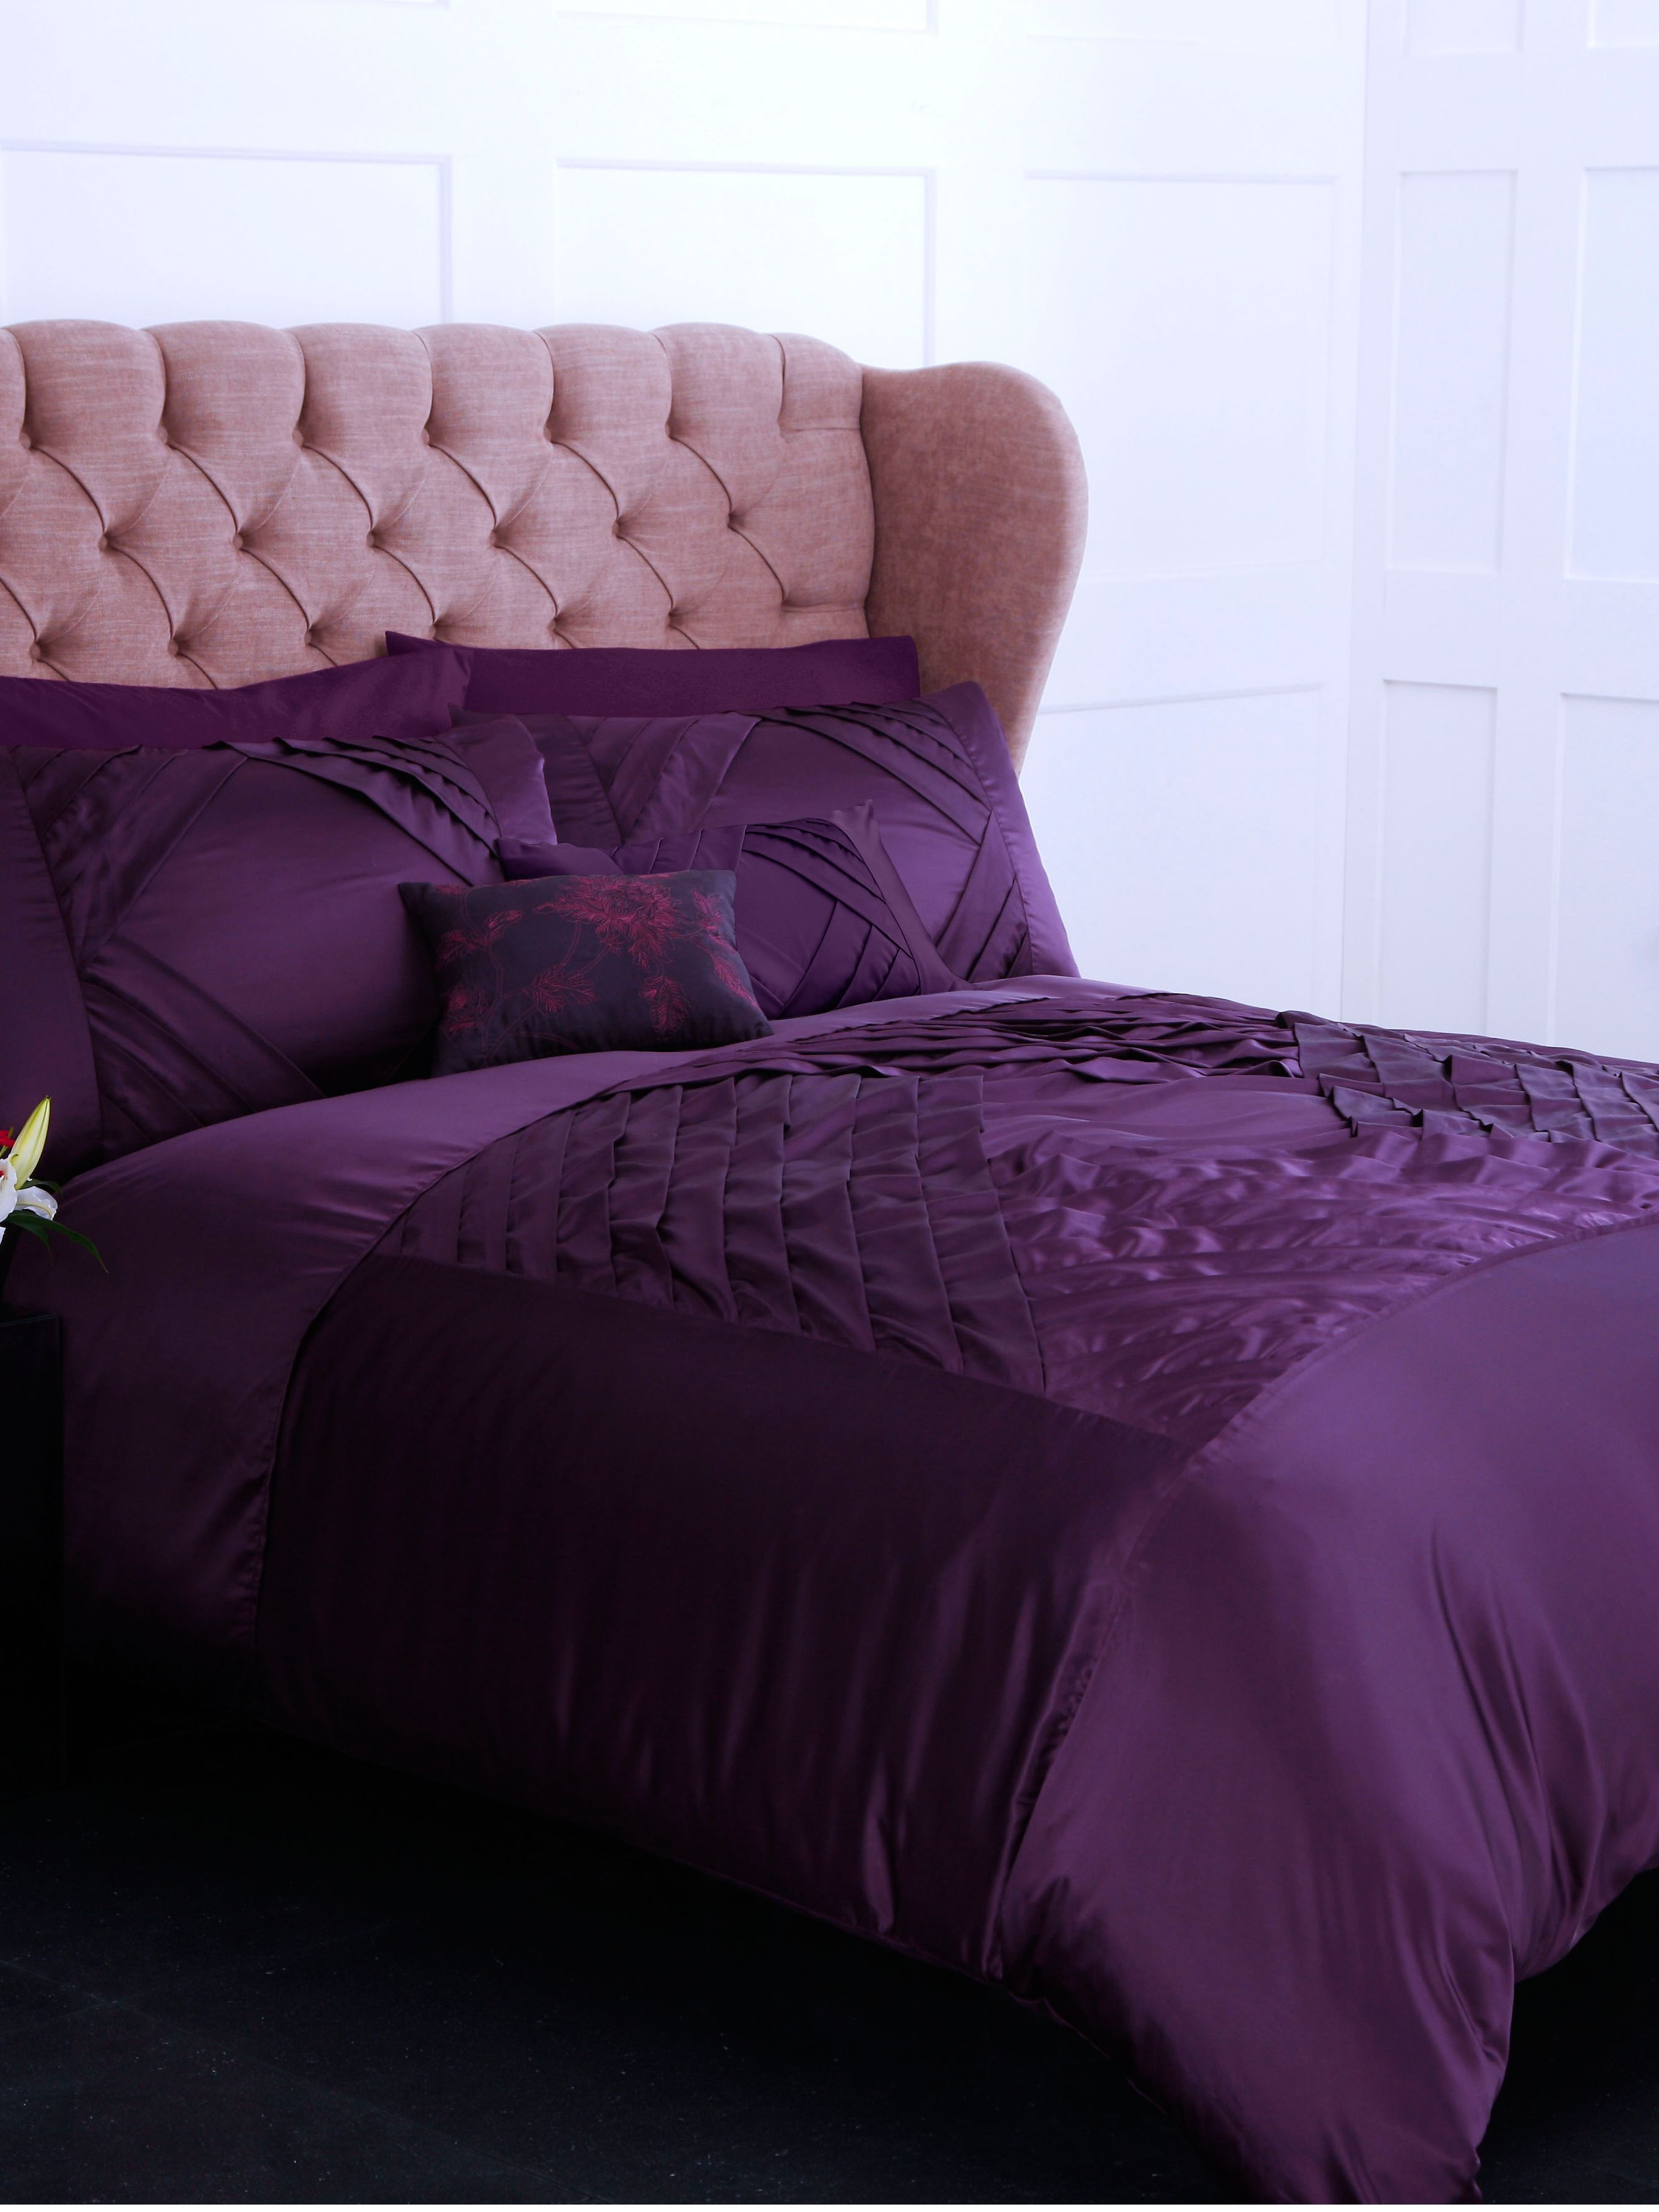 Plum diamond king duvet cover